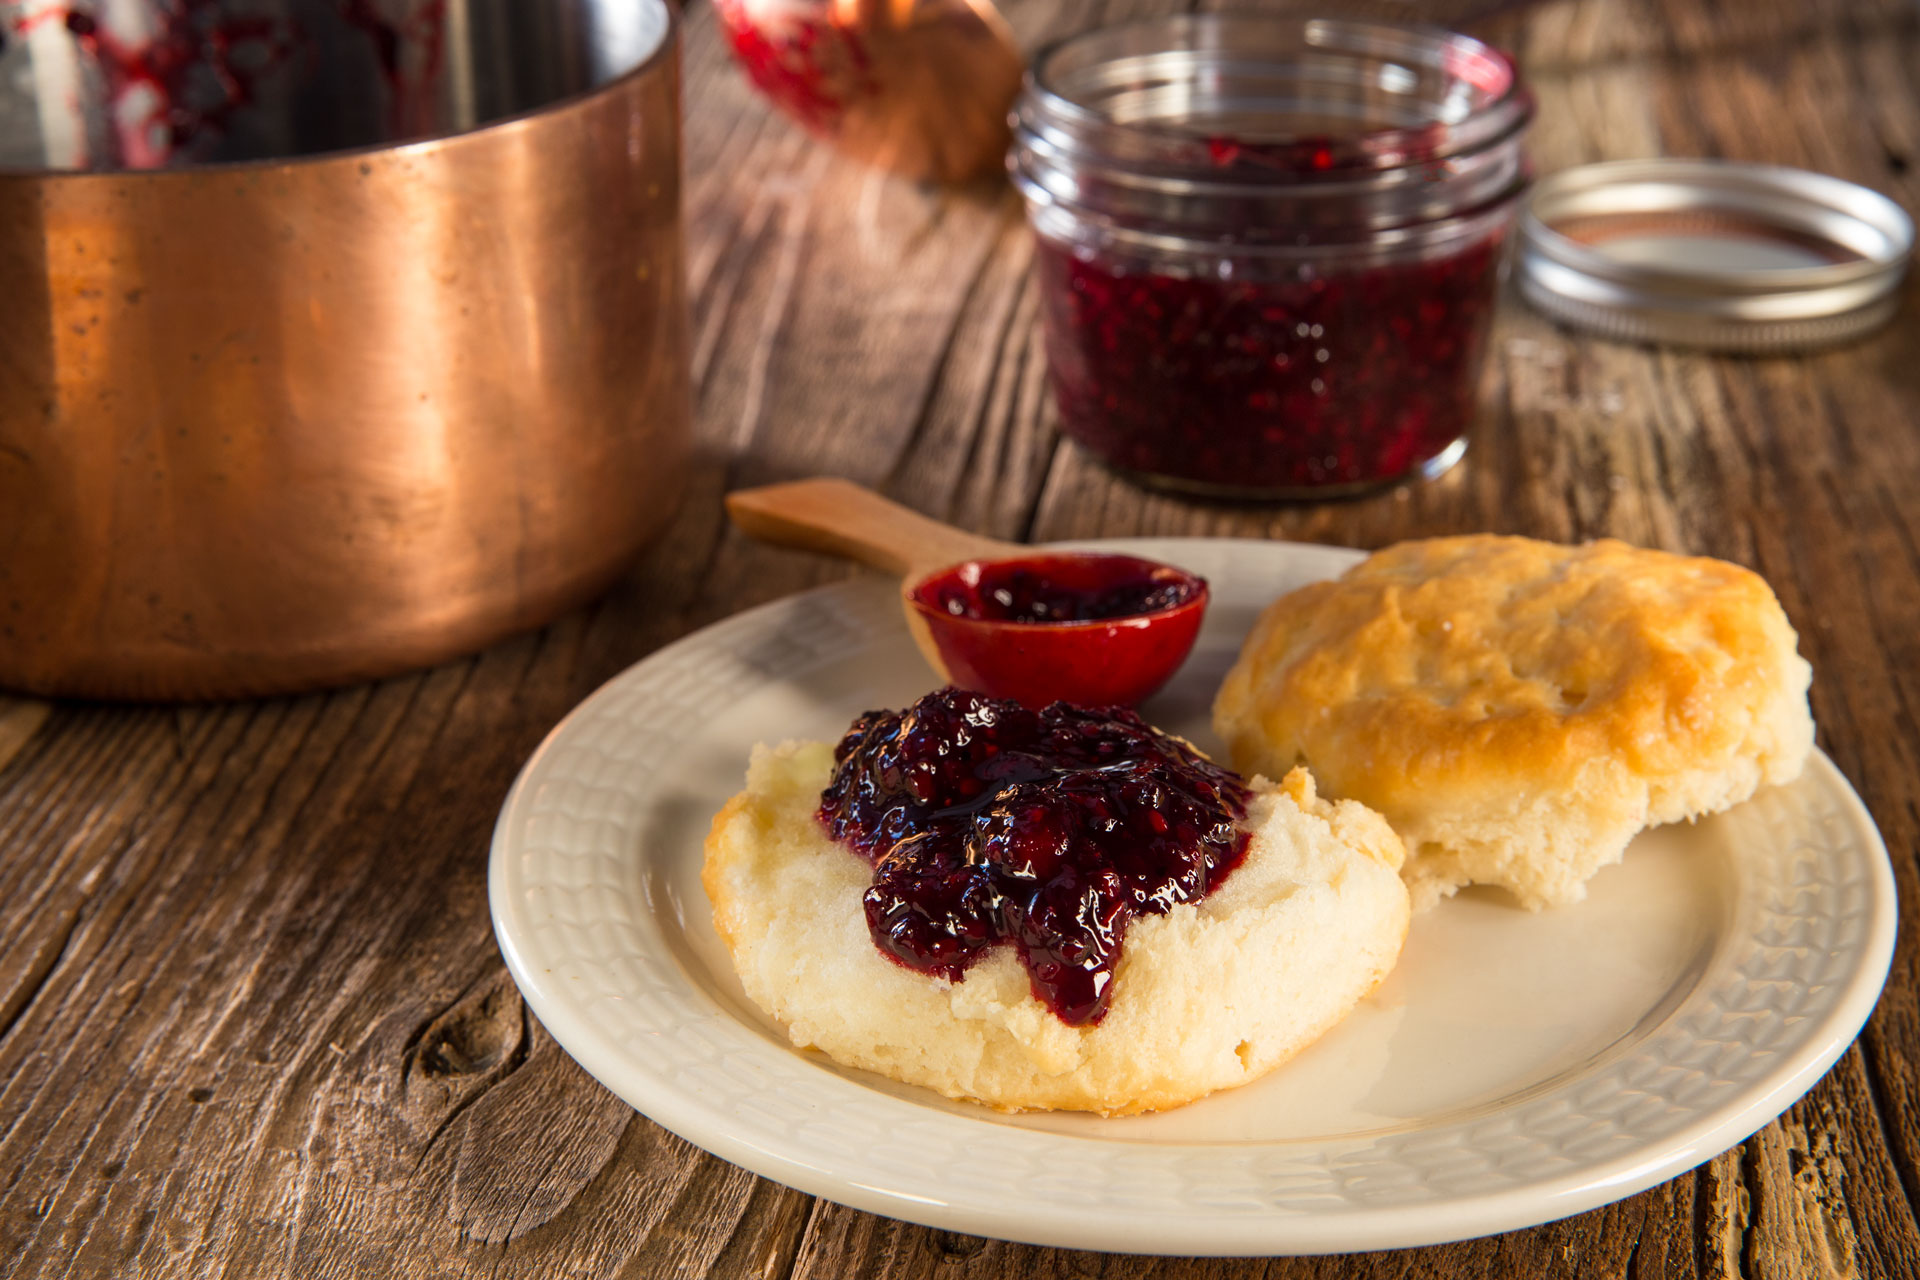 Take advantage of seasonal blackberries with this easy to prepare refrigerator jam! We added aromatic roasted cinnamon and a pinch of fresh-ground black pepper to our jam, but it is just as delicious made simply with sweet ripe berries and sugar.